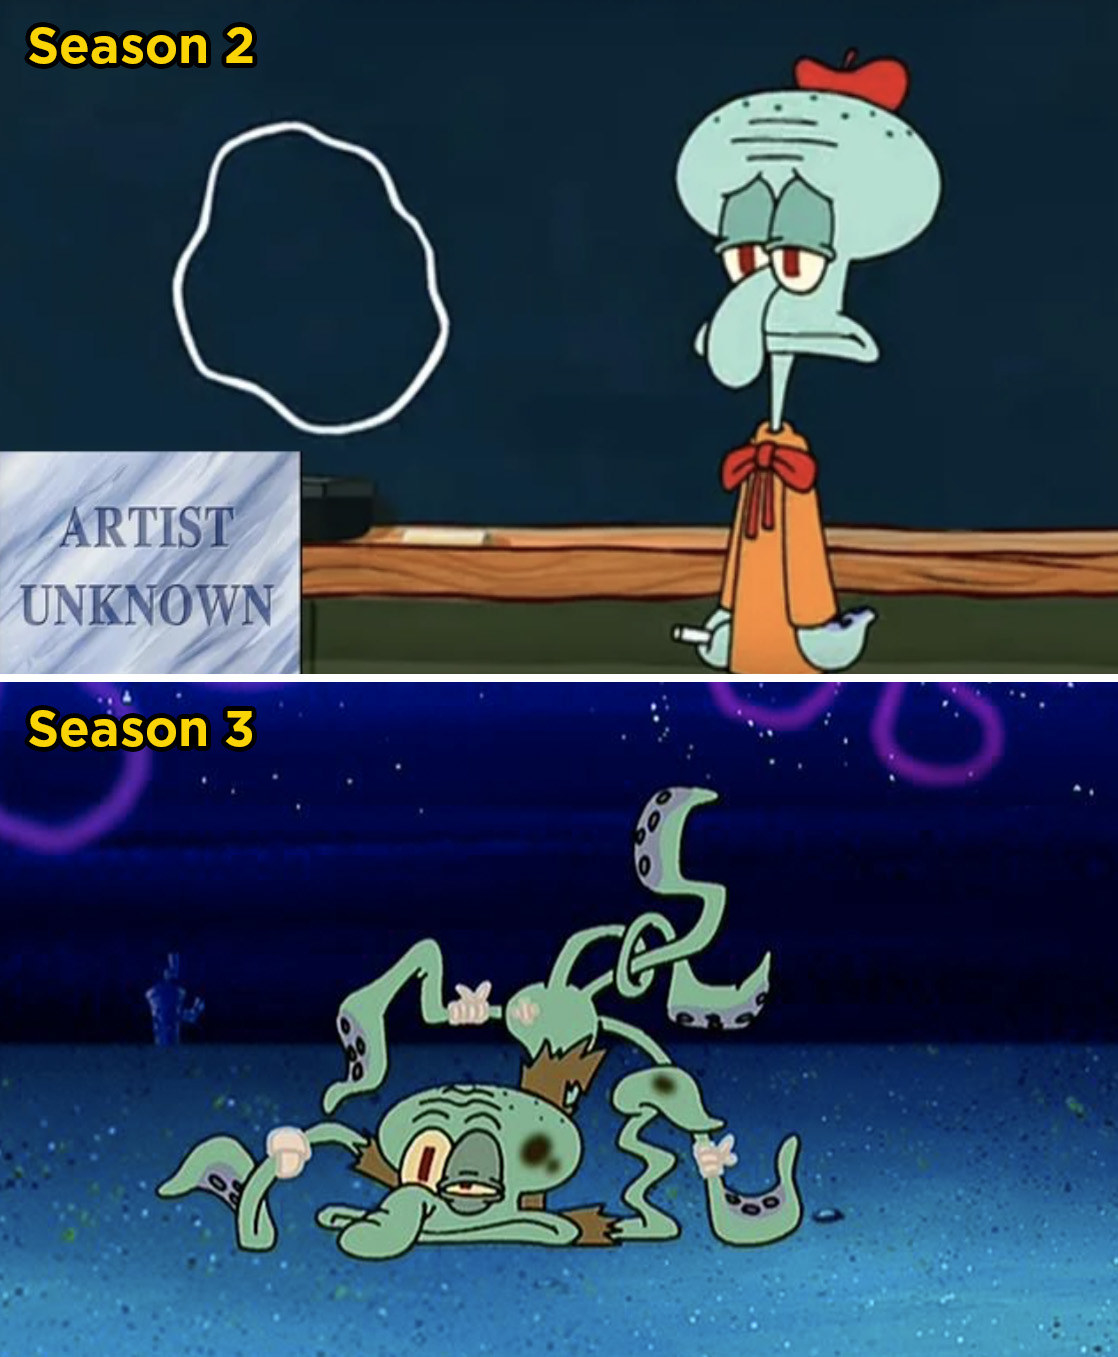 In  SpongeBob SquarePants , Squidward poorly draws a circle at his art show. Later on, he gets attacked by a sea bear because he still can't draw a perfect circle, which protects you from an attack.